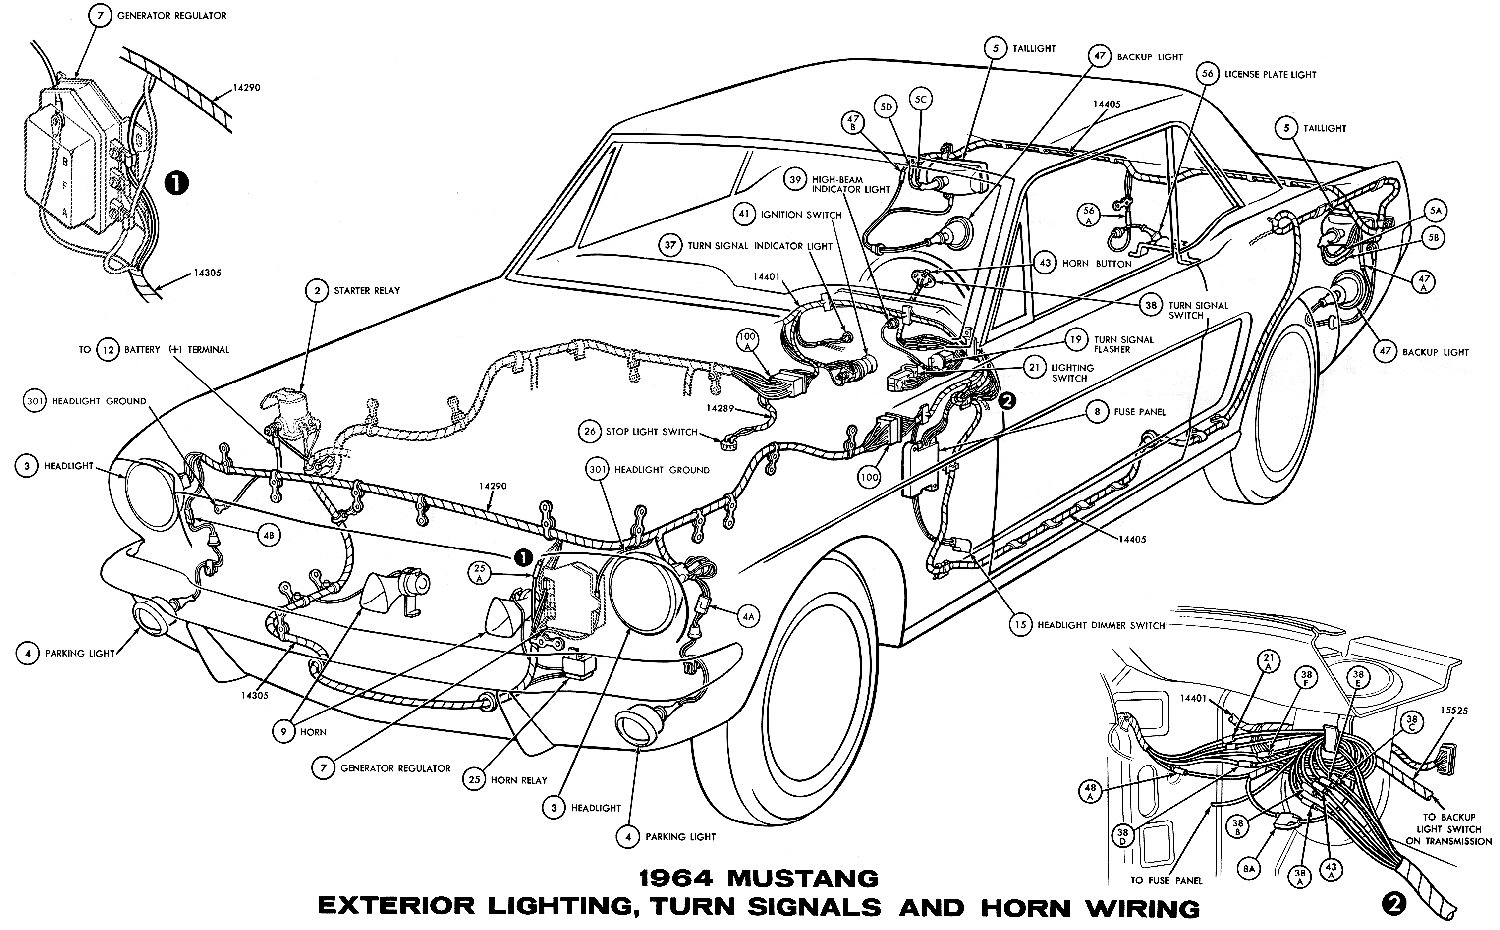 1967 F250 Horn Wiring Diagram Archive Of Automotive 56 Ford 1956 Tractor Free 1964 Mustang Diagrams Average Joe Restoration Rh Averagejoerestoration Com